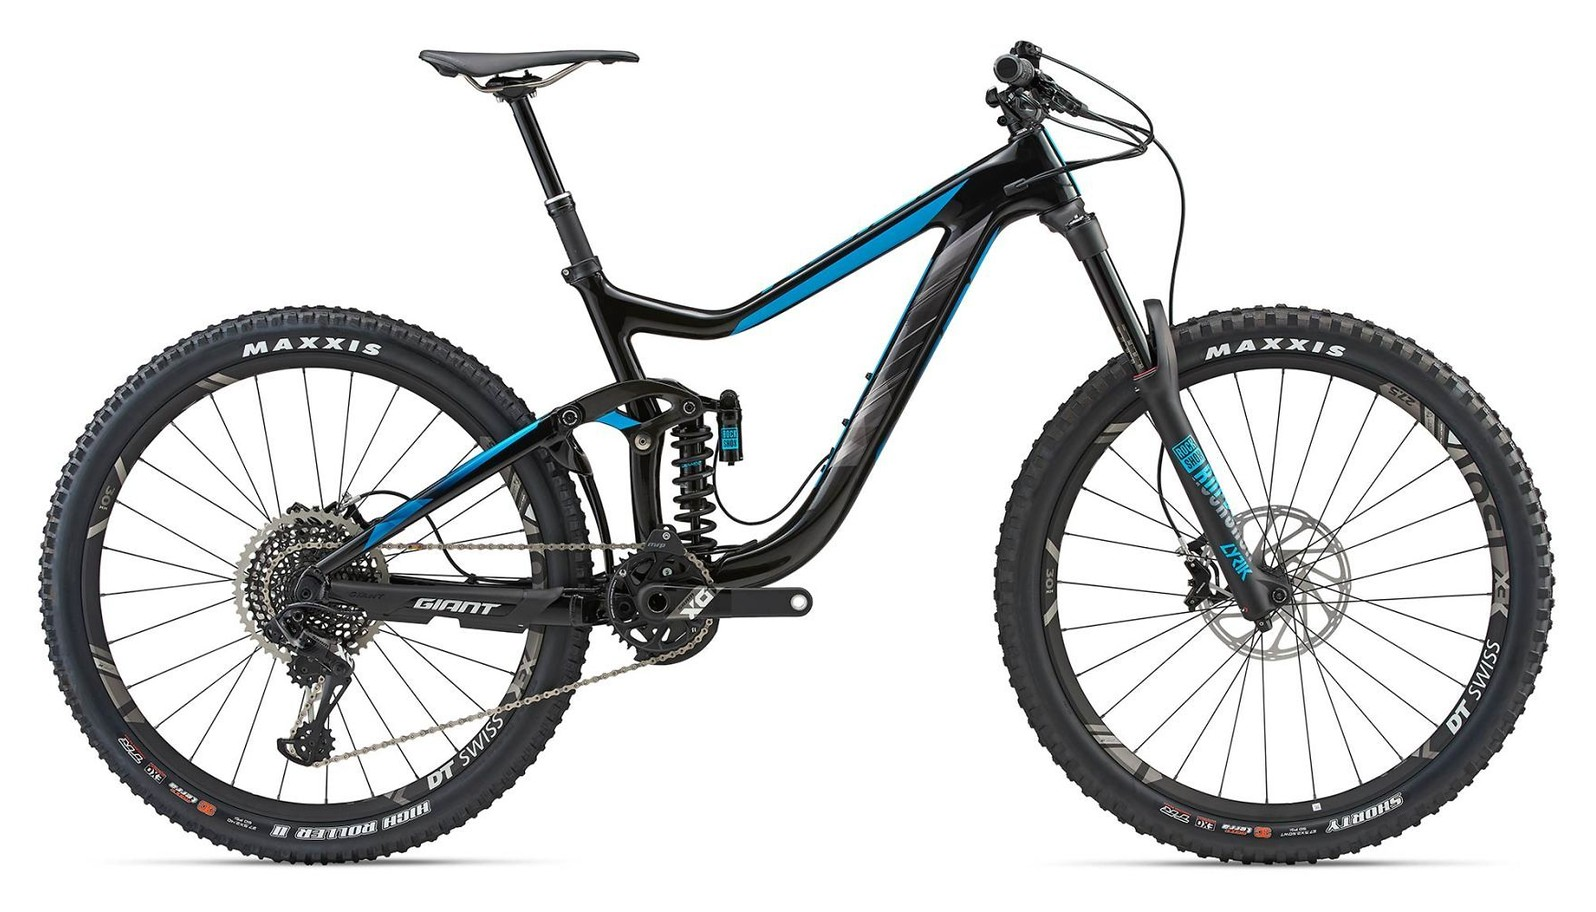 2018 Giant Reign Advanced 0 Bike Reign Advanced 0 Carbon